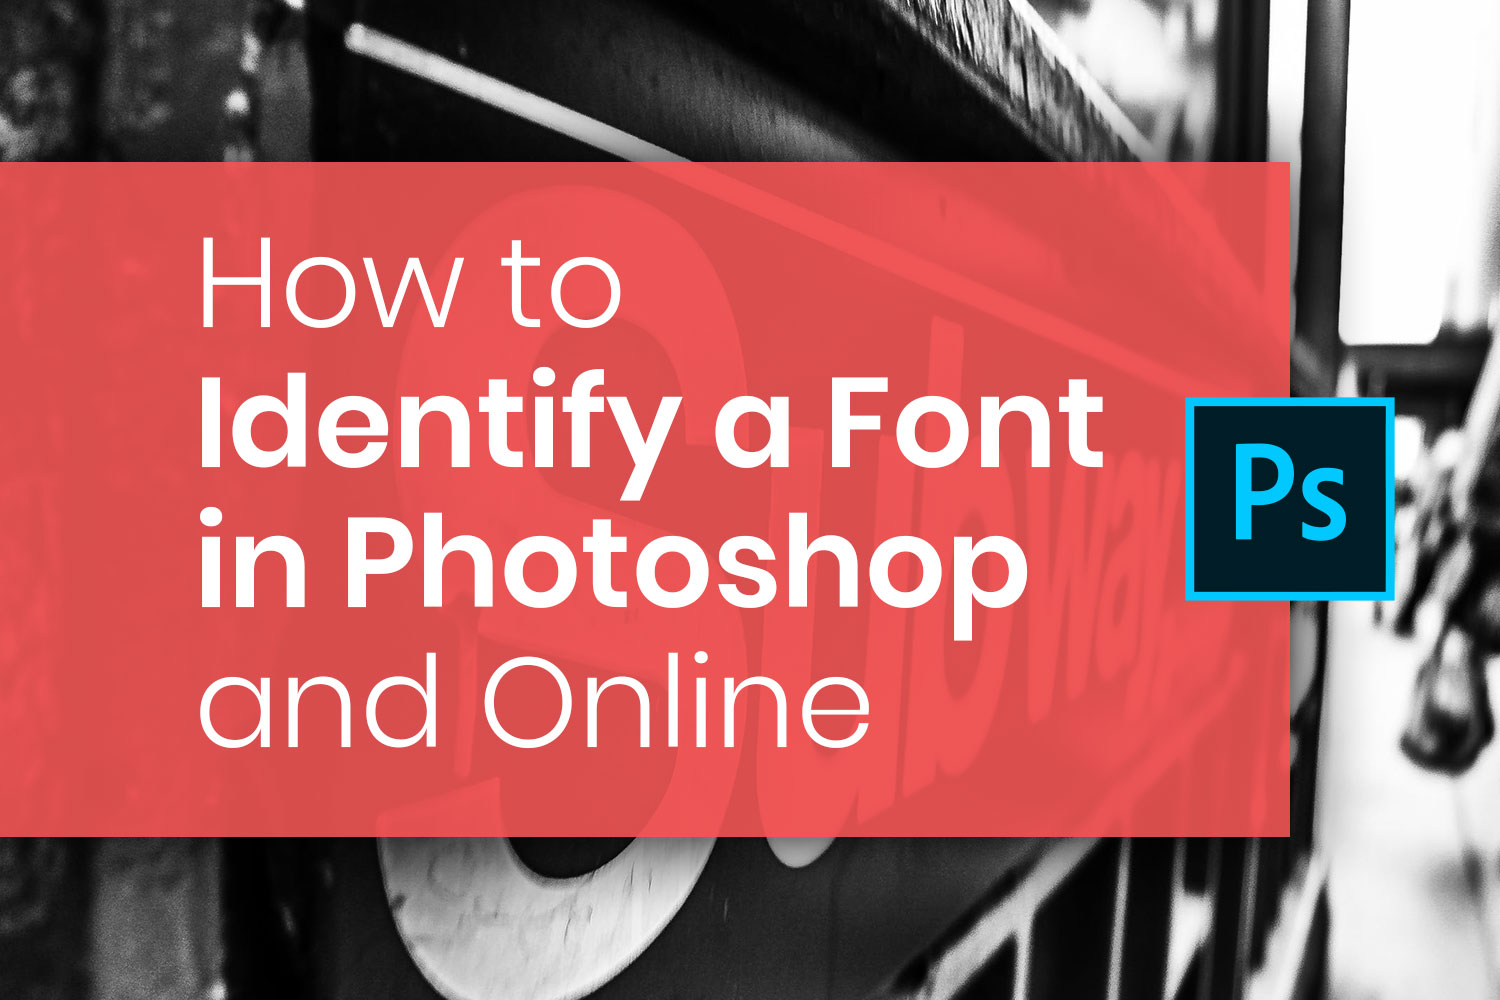 How to identify a font in Photoshop and online